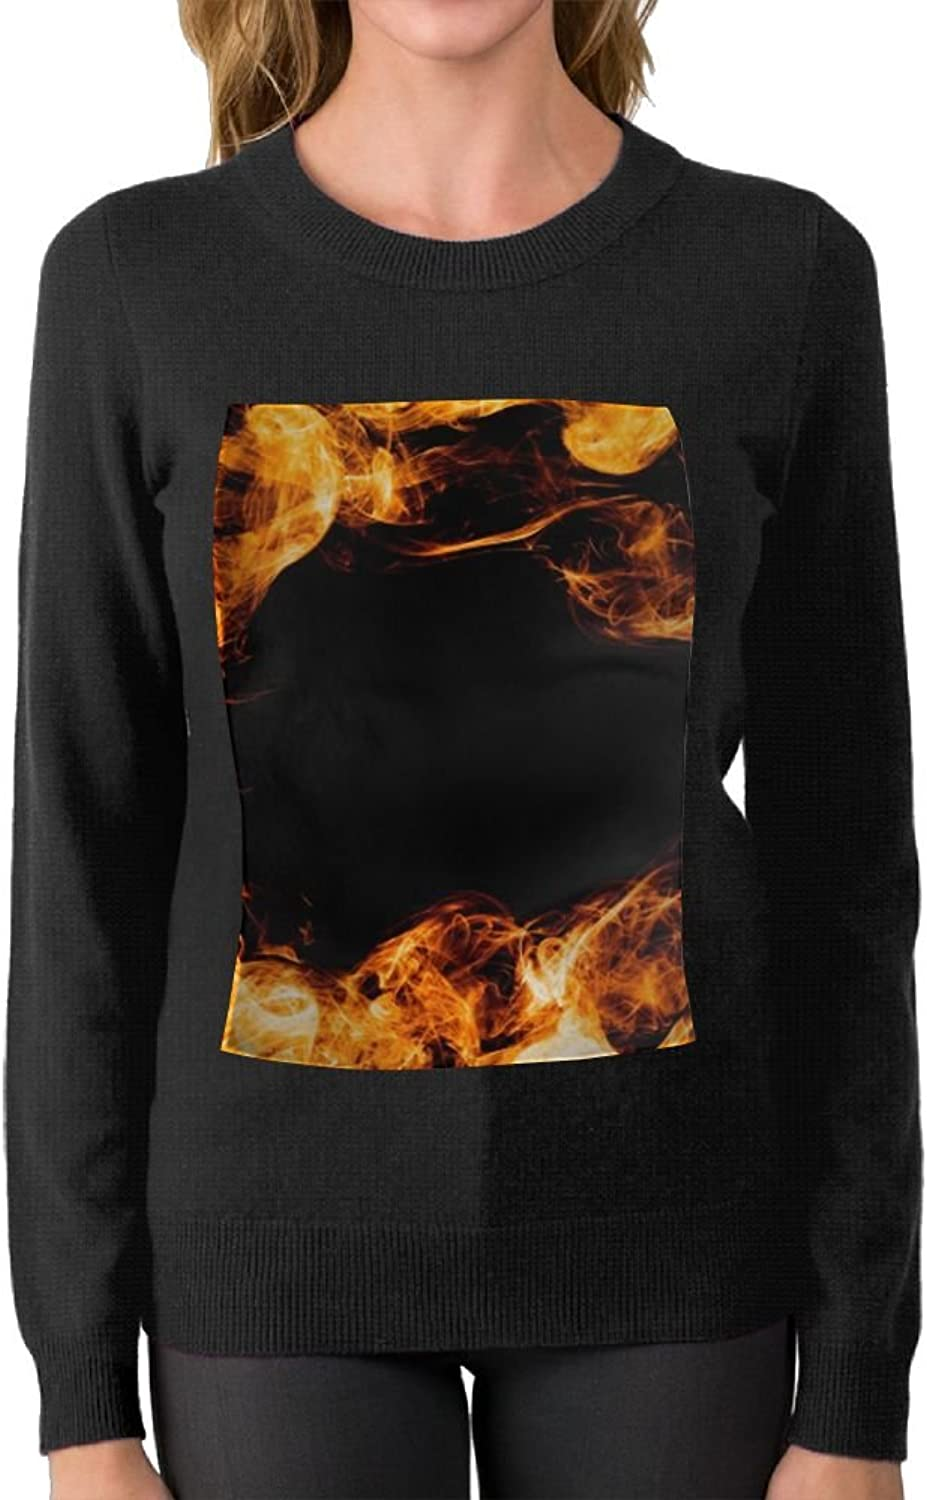 Woman Flame Circle Wallpaper Graphic Sweater Boyfriend First Quality\r\n Warm Crew Neck